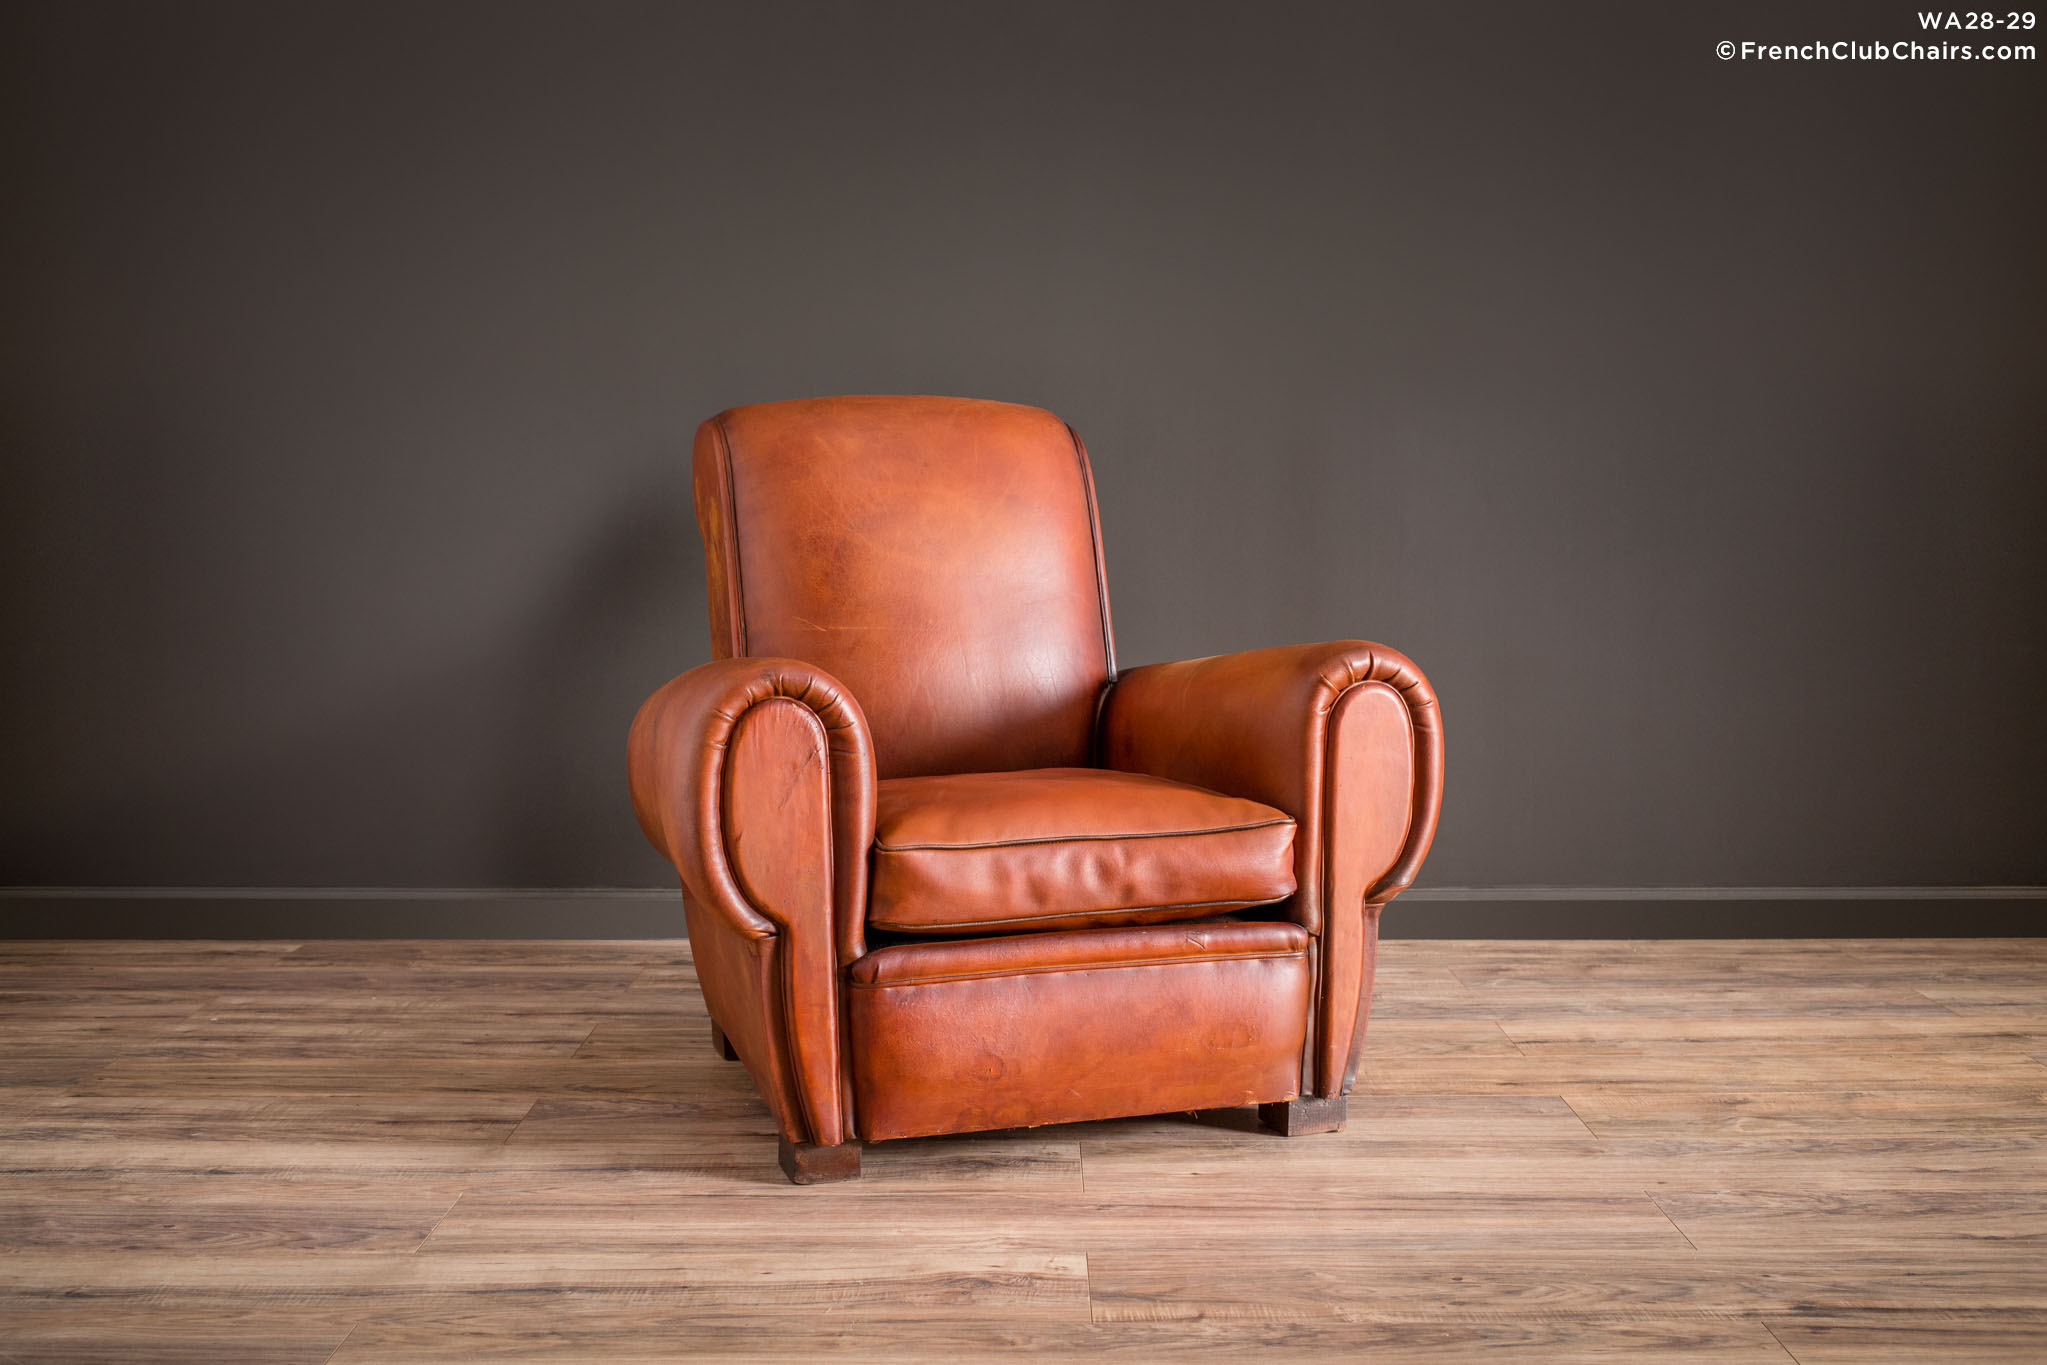 WA_28-29_Giant_Lille_Caramel_Rollback_Solo_R_1TQ1-williams-antiks-leather-french-club-chair-wa_fcccom